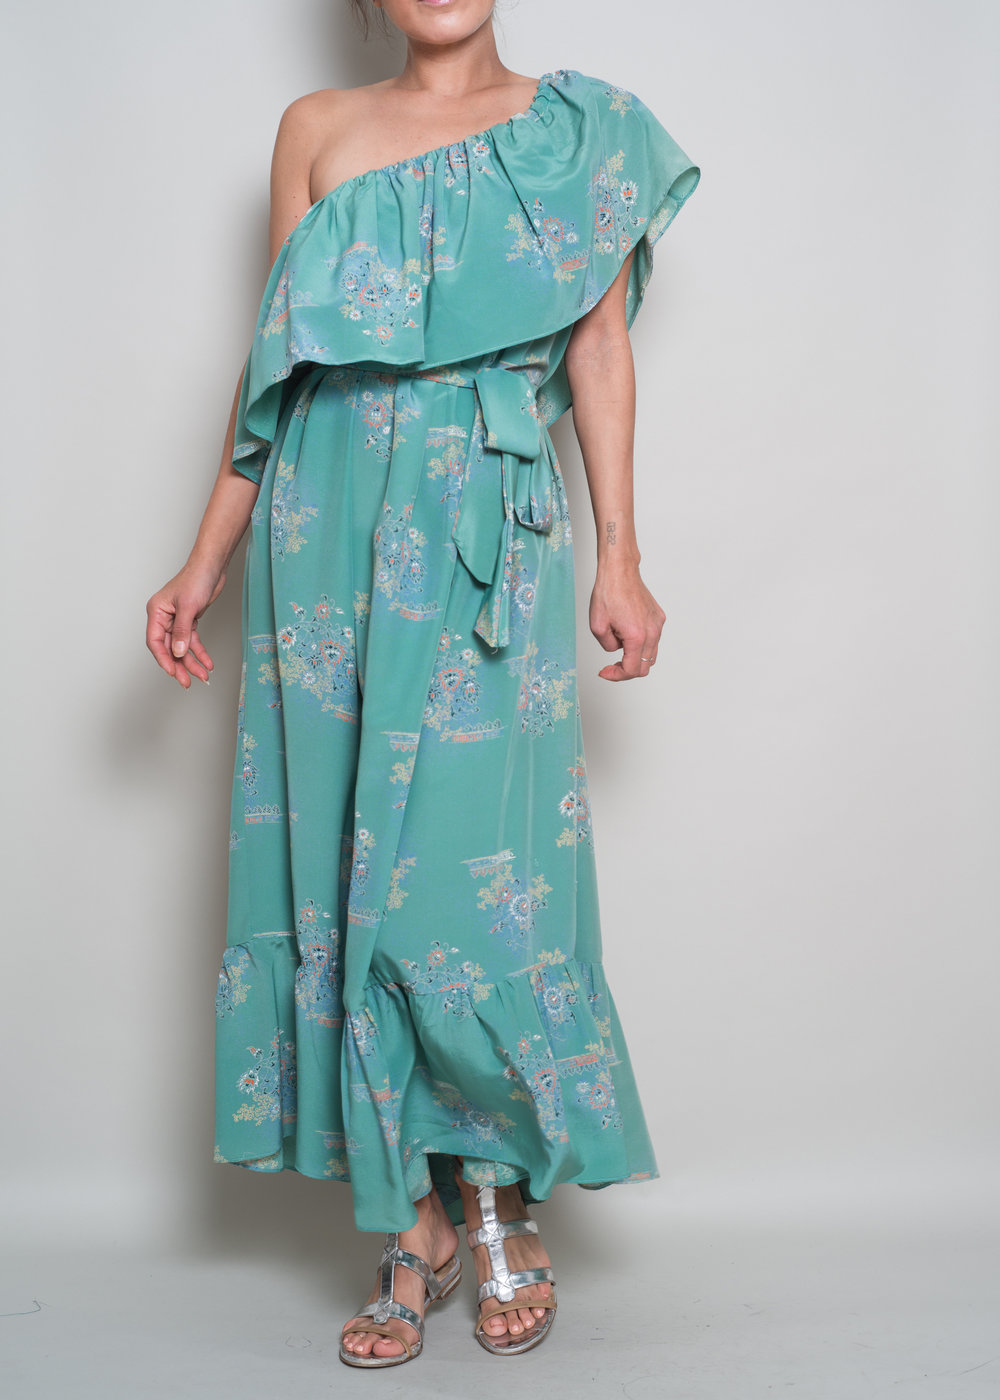 LUCIA Japanese Blossom - SOLD OUT